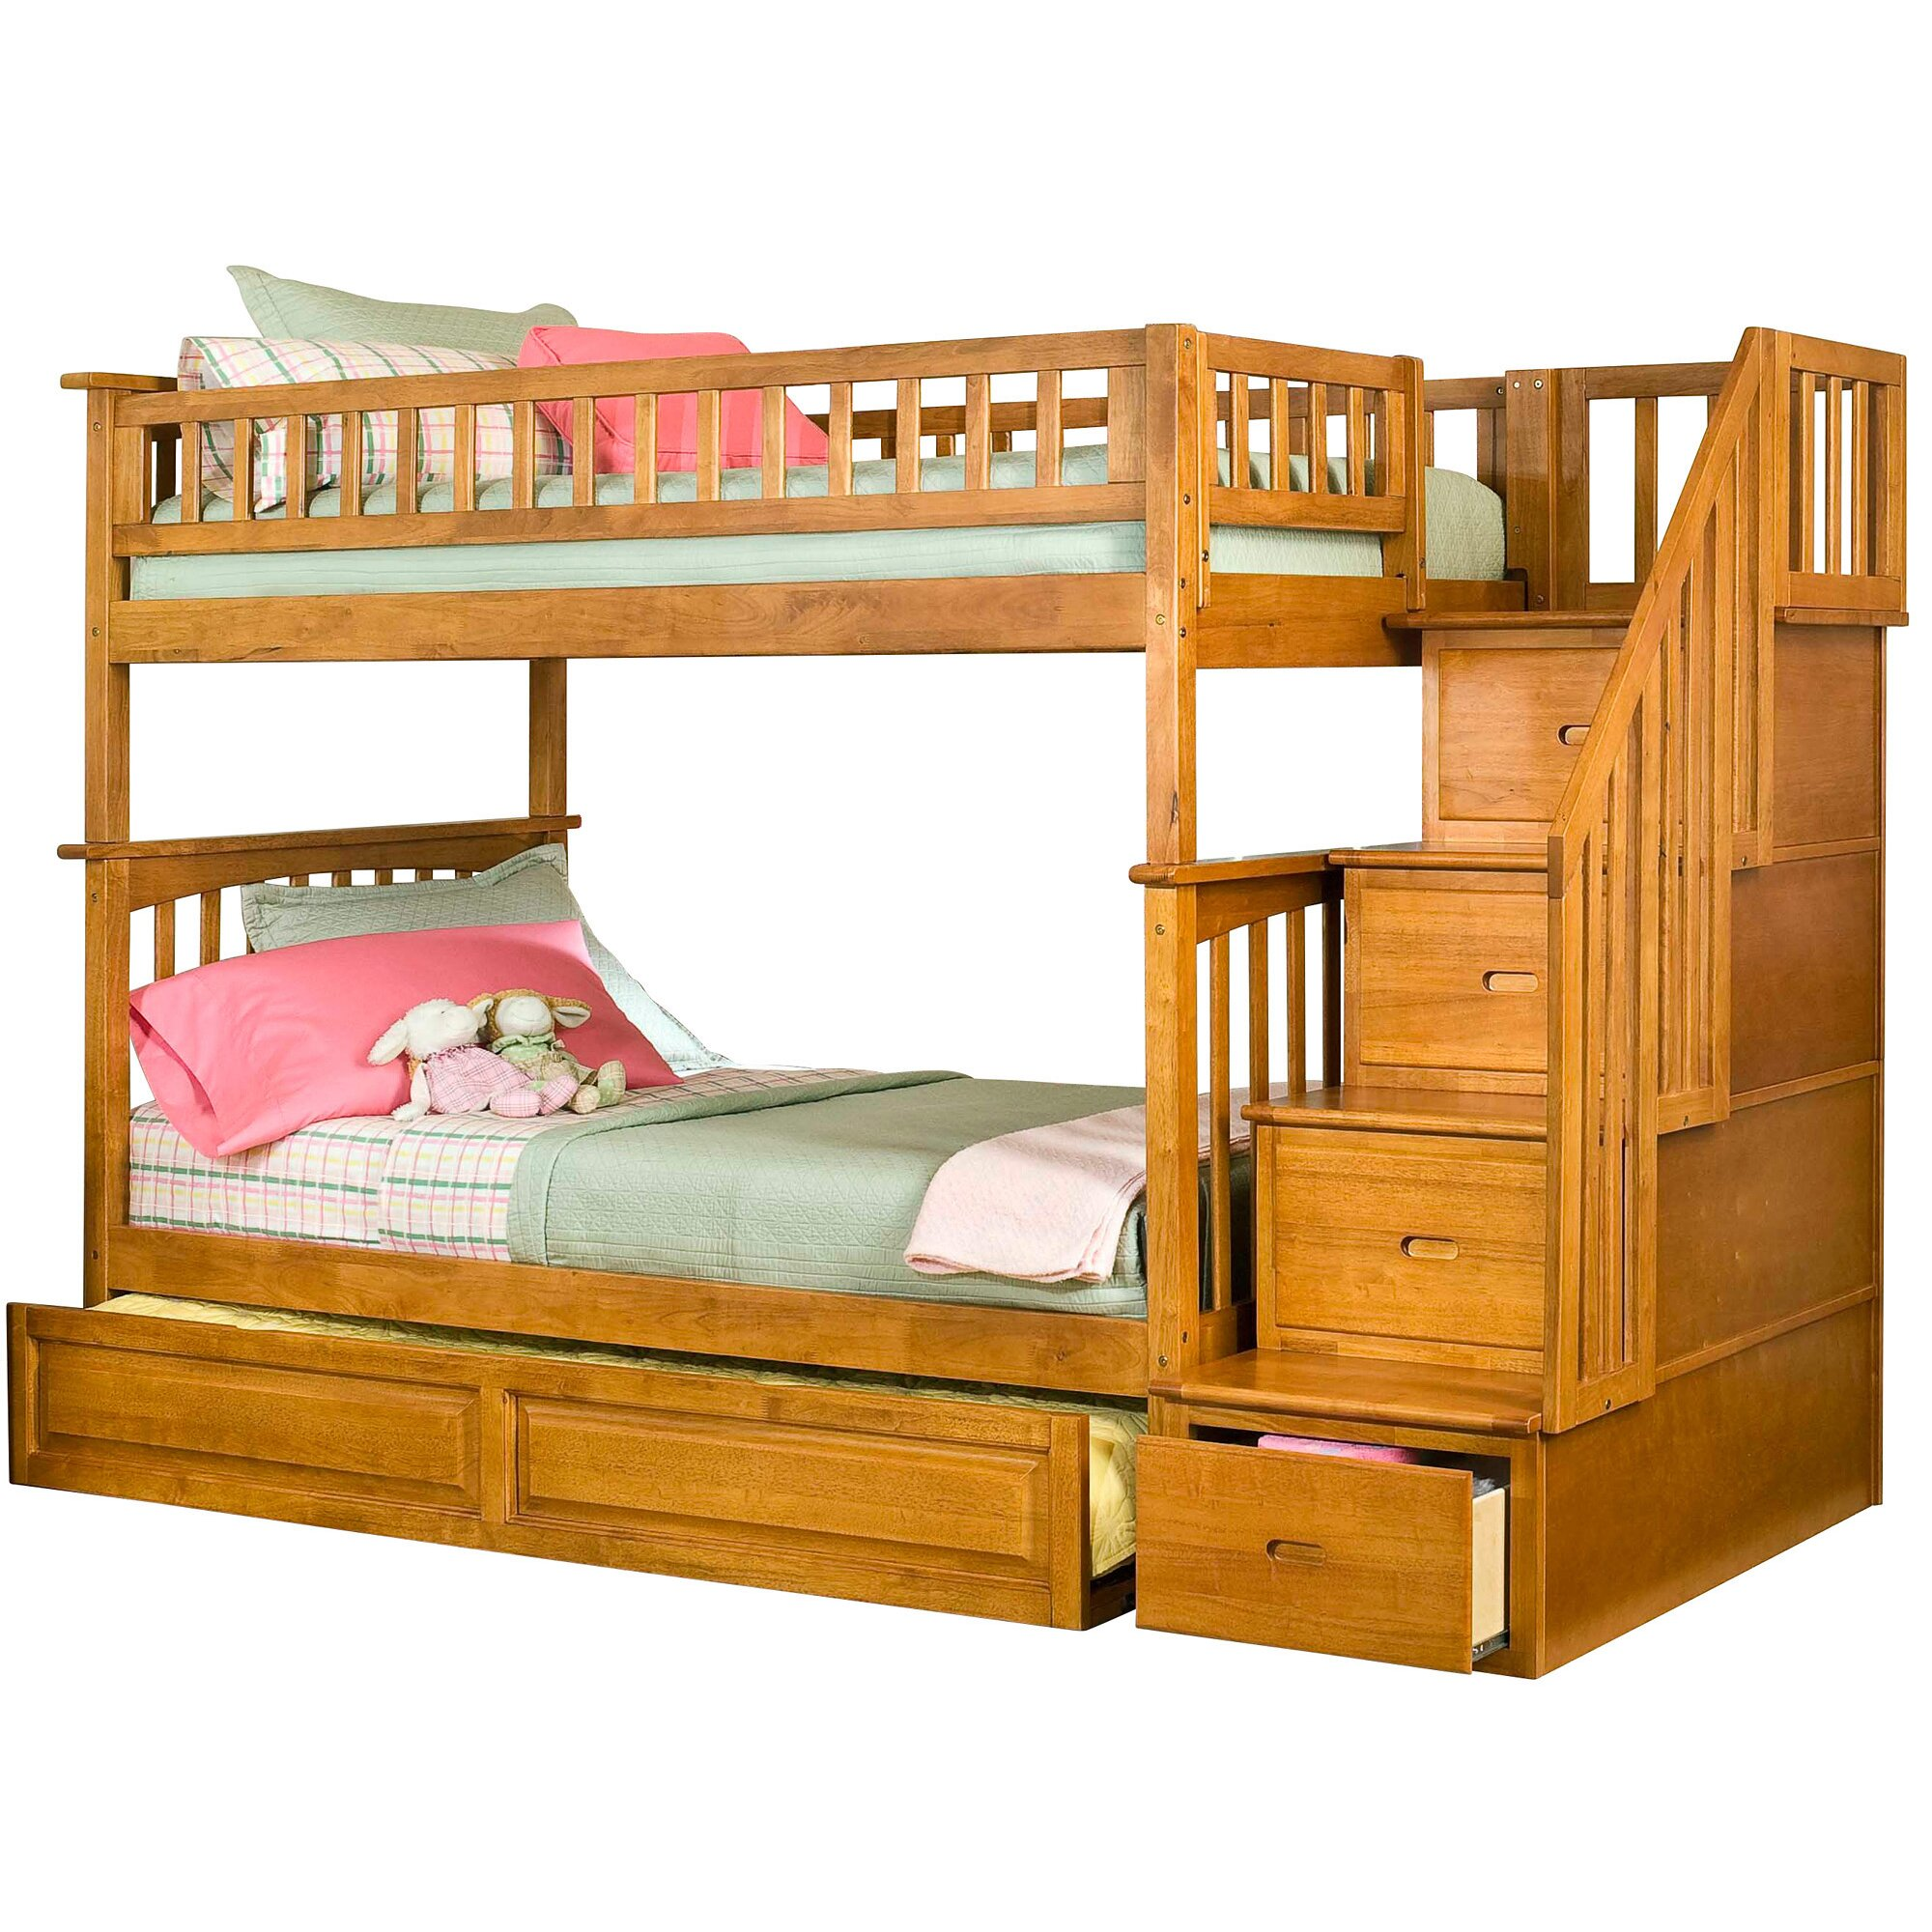 viv rae henry staircase bunk bed with raised panel. Black Bedroom Furniture Sets. Home Design Ideas